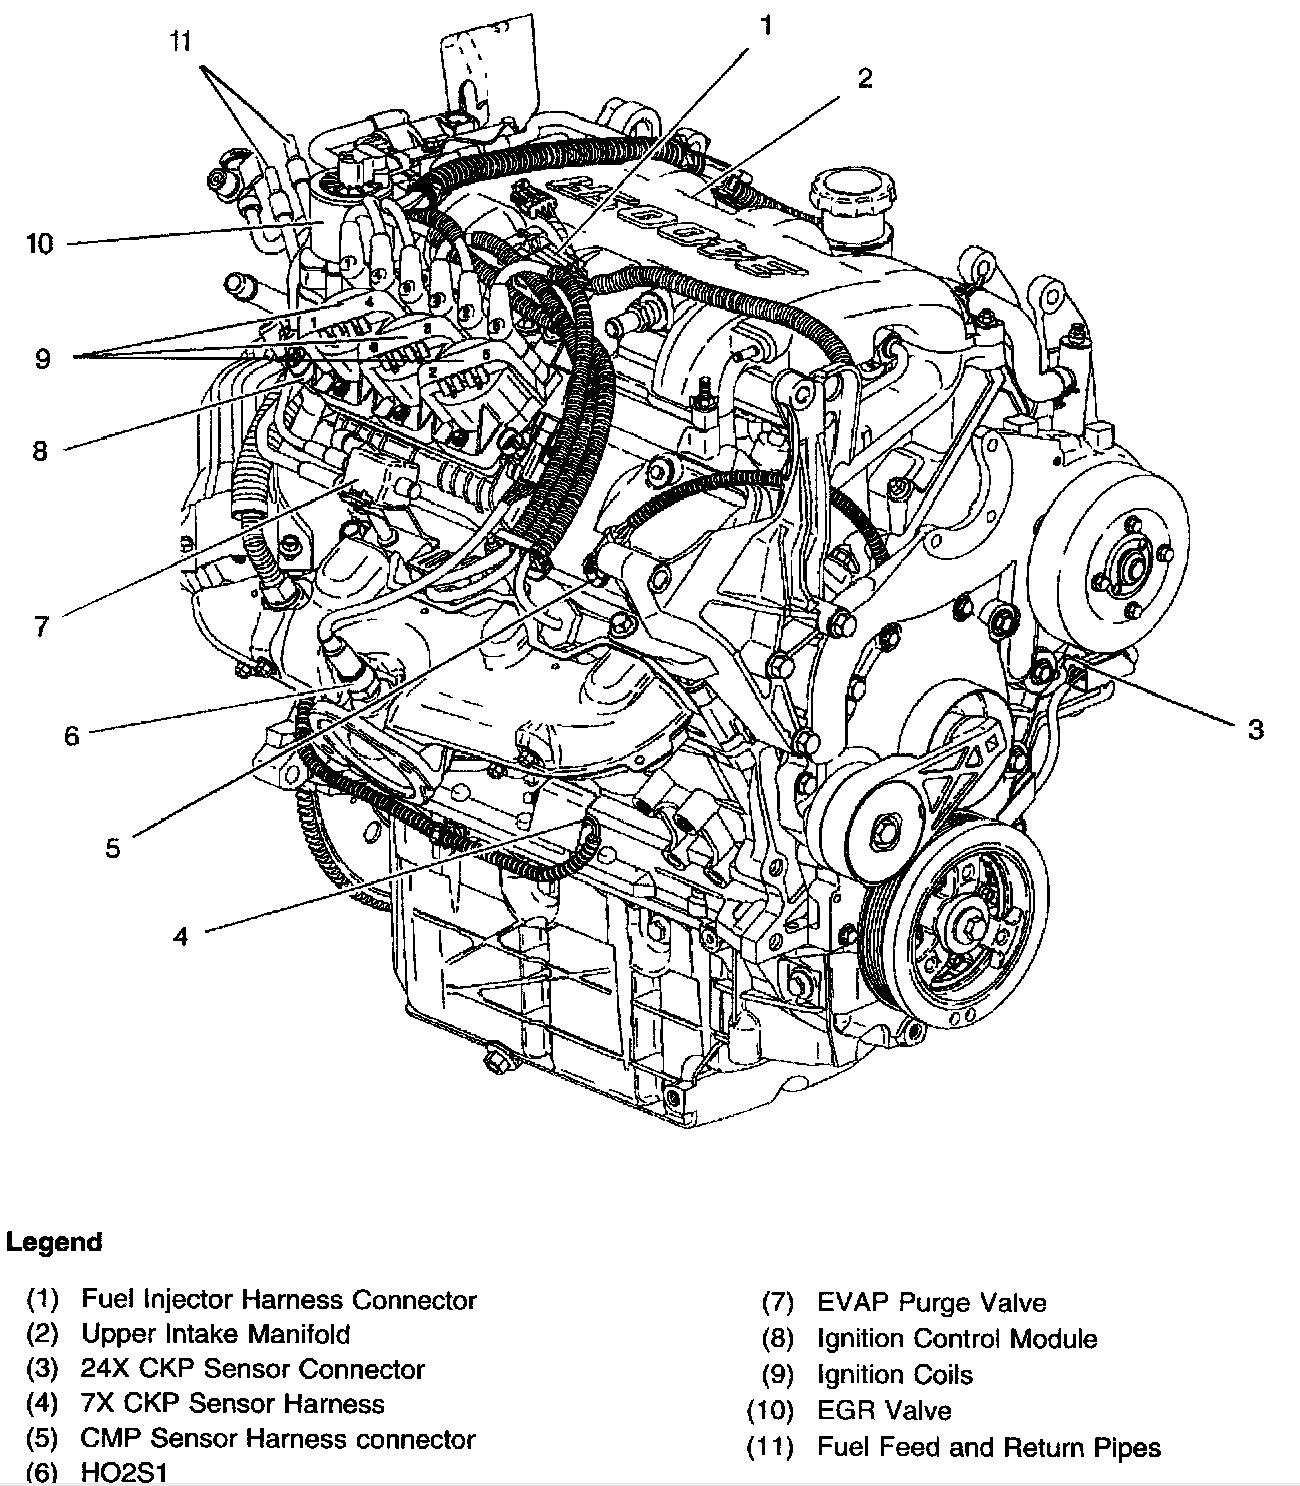 buick 3100 sfi v6 engine diagram wiring diagram perfomance  3400 sfi power steering pump diagram #12